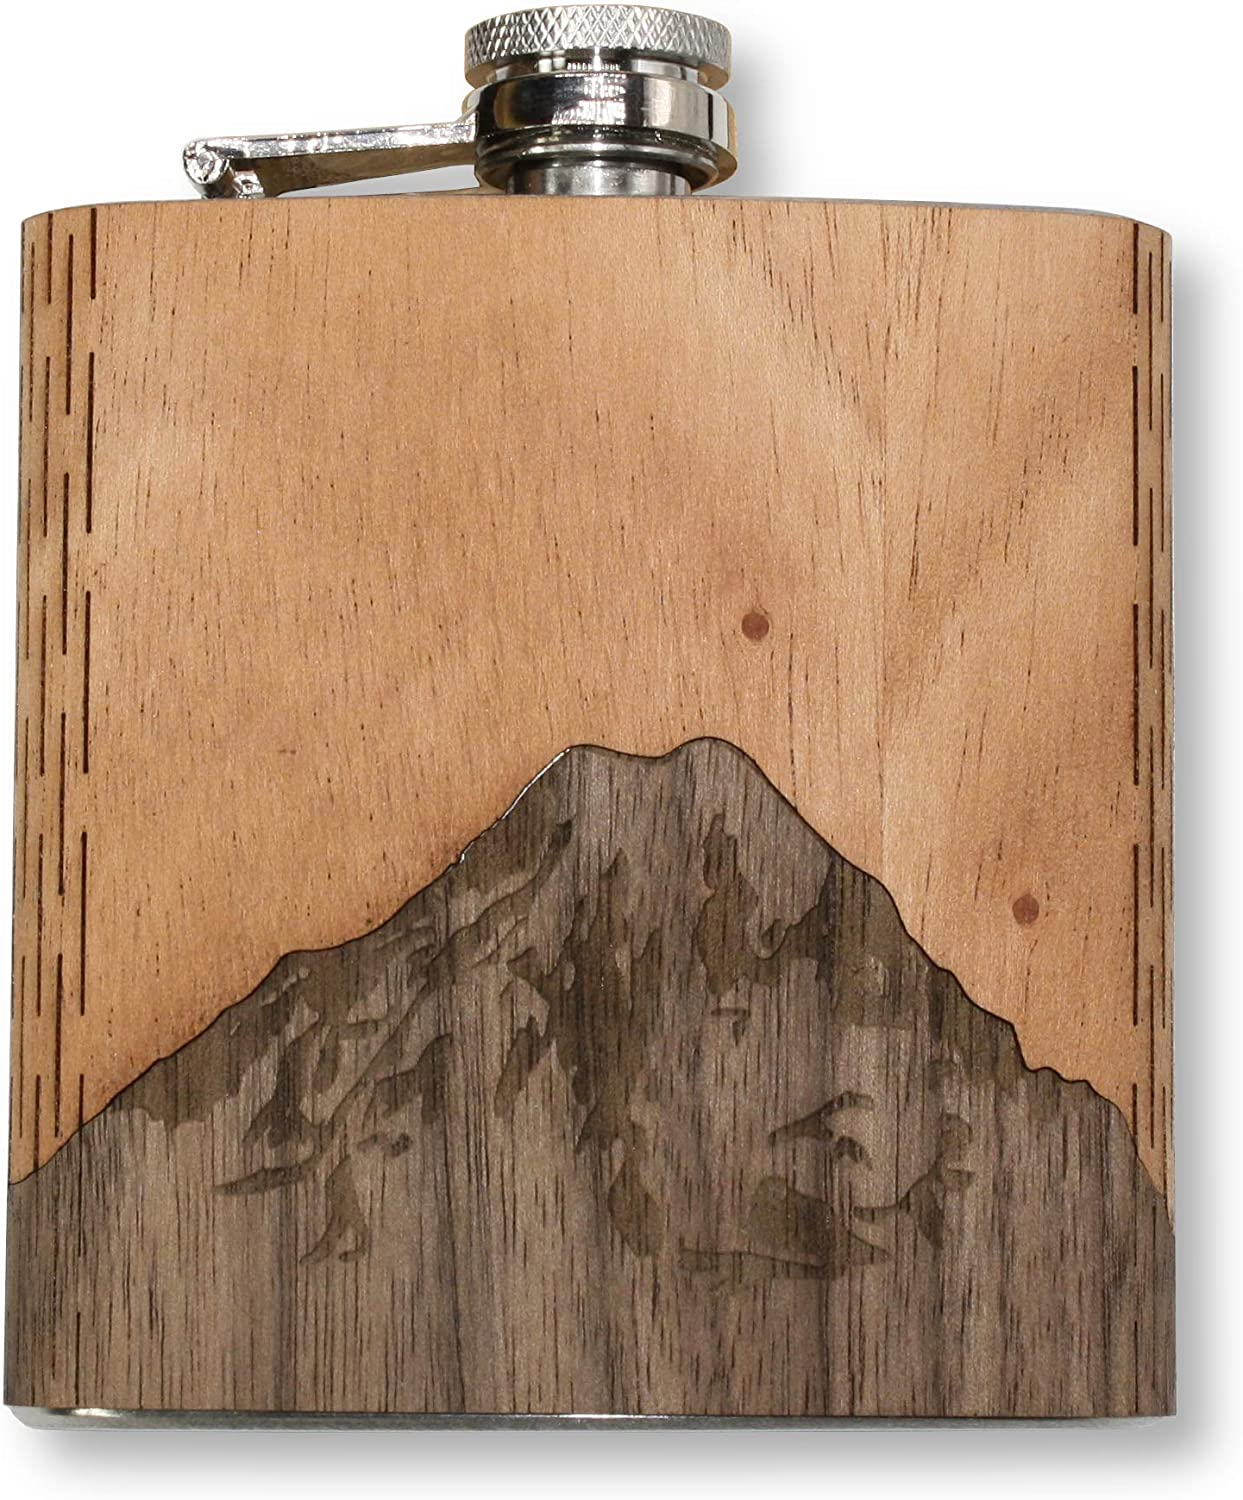 WUDN 6 oz. Wooden Hip Flask Mt. - Steel Rainier Stainless Body 正規品スーパーSALE×店内全品キャンペーン 正規店